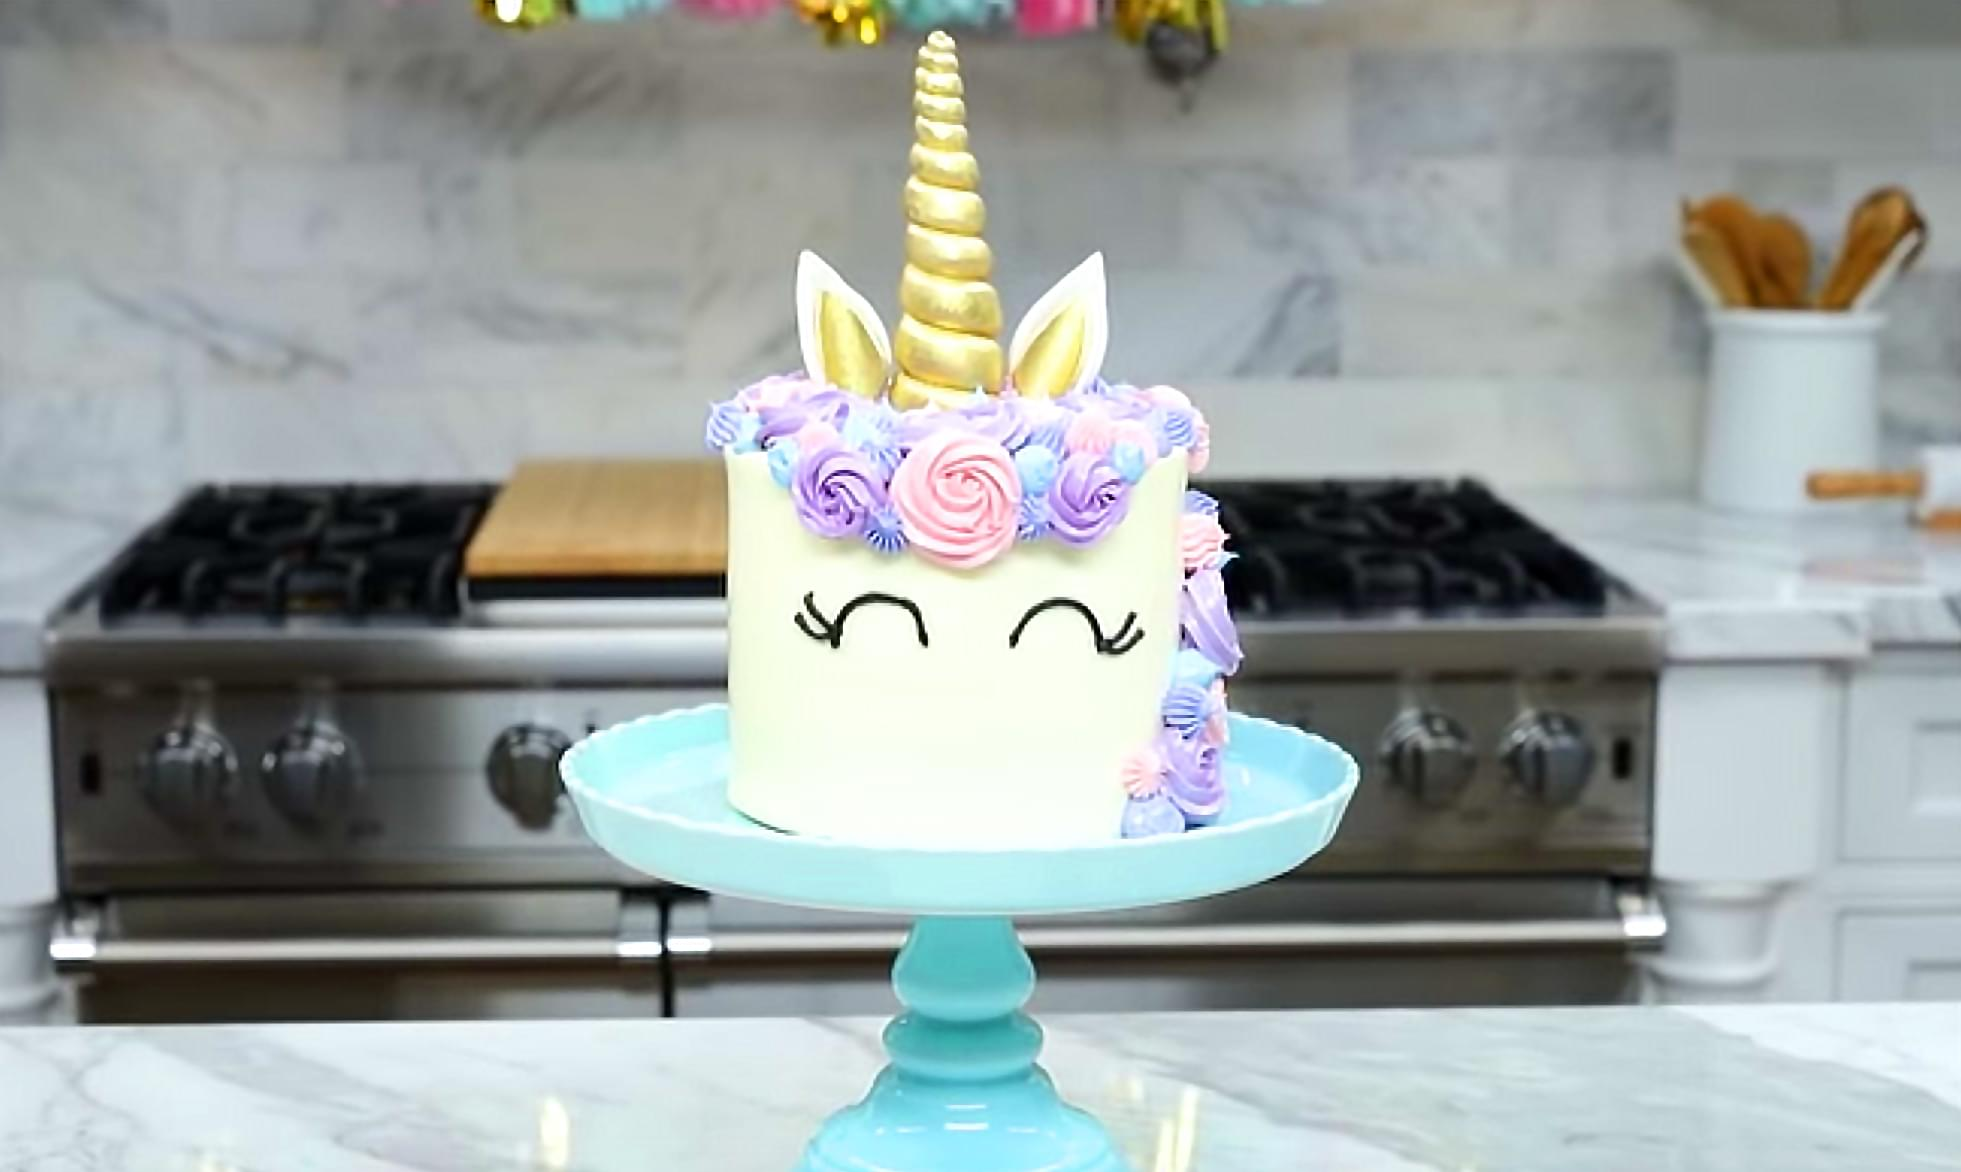 Google reports that 'Unicorn Cake' was the most searched food last year